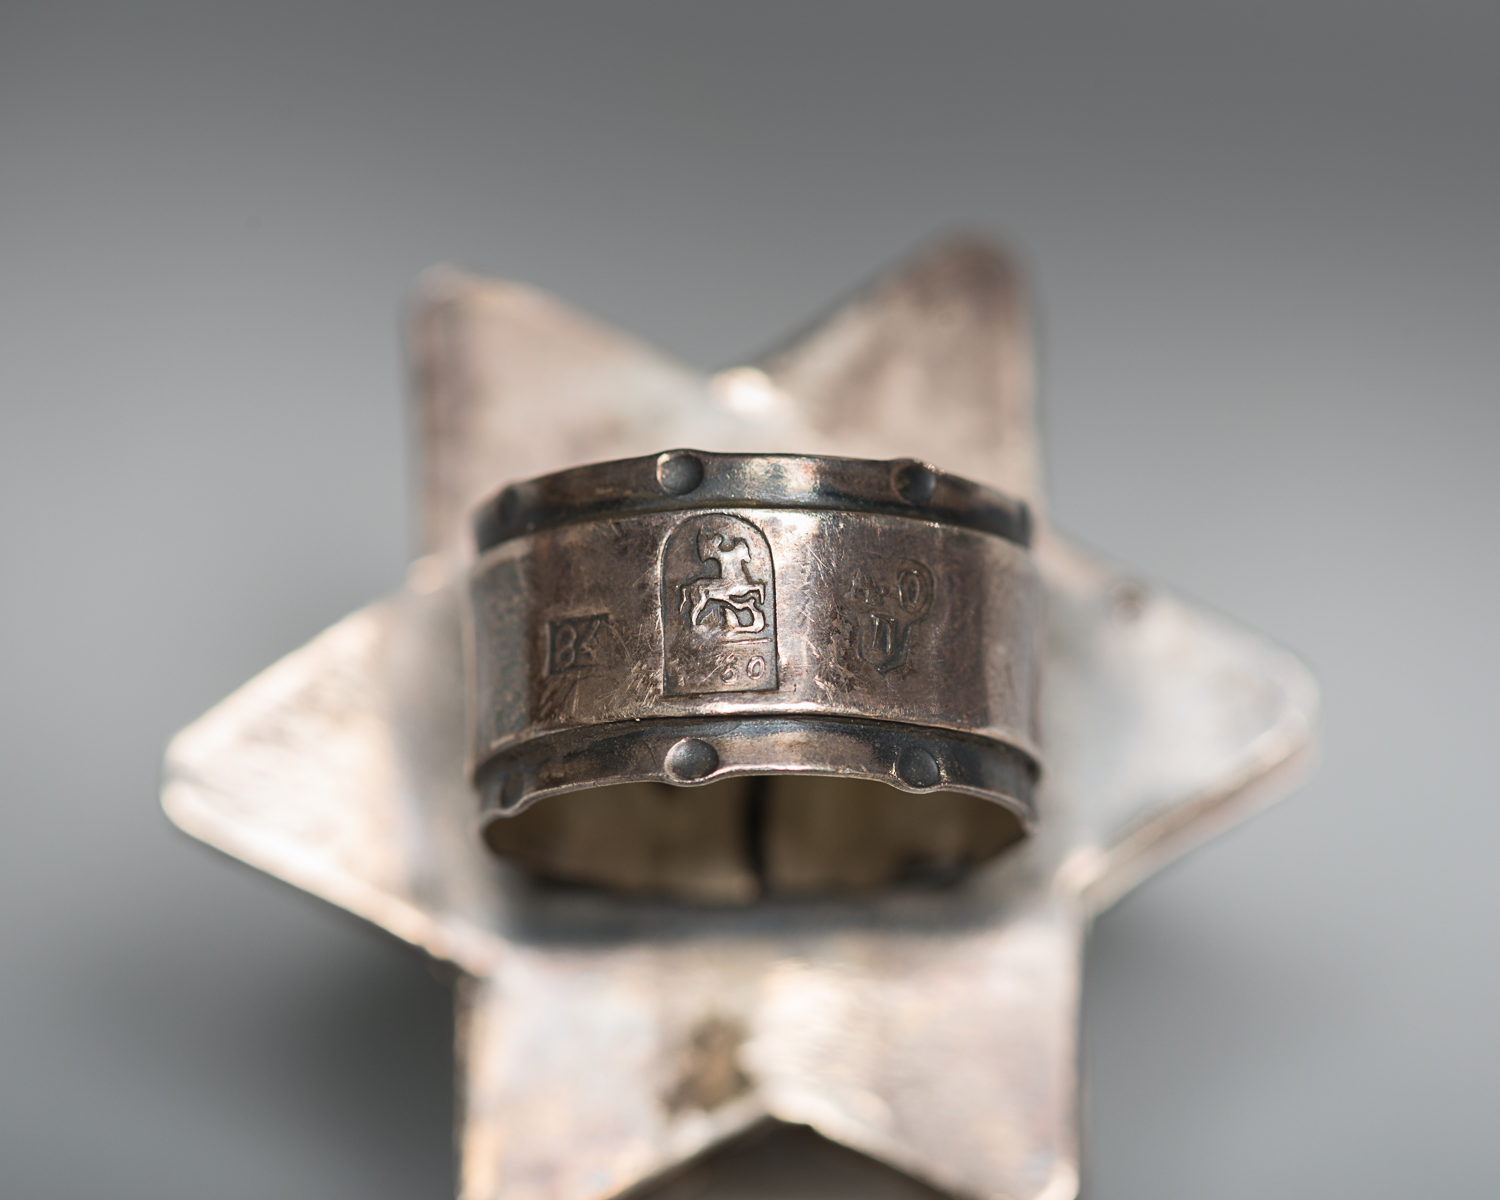 A coat of arms is engraved underneath the ring.